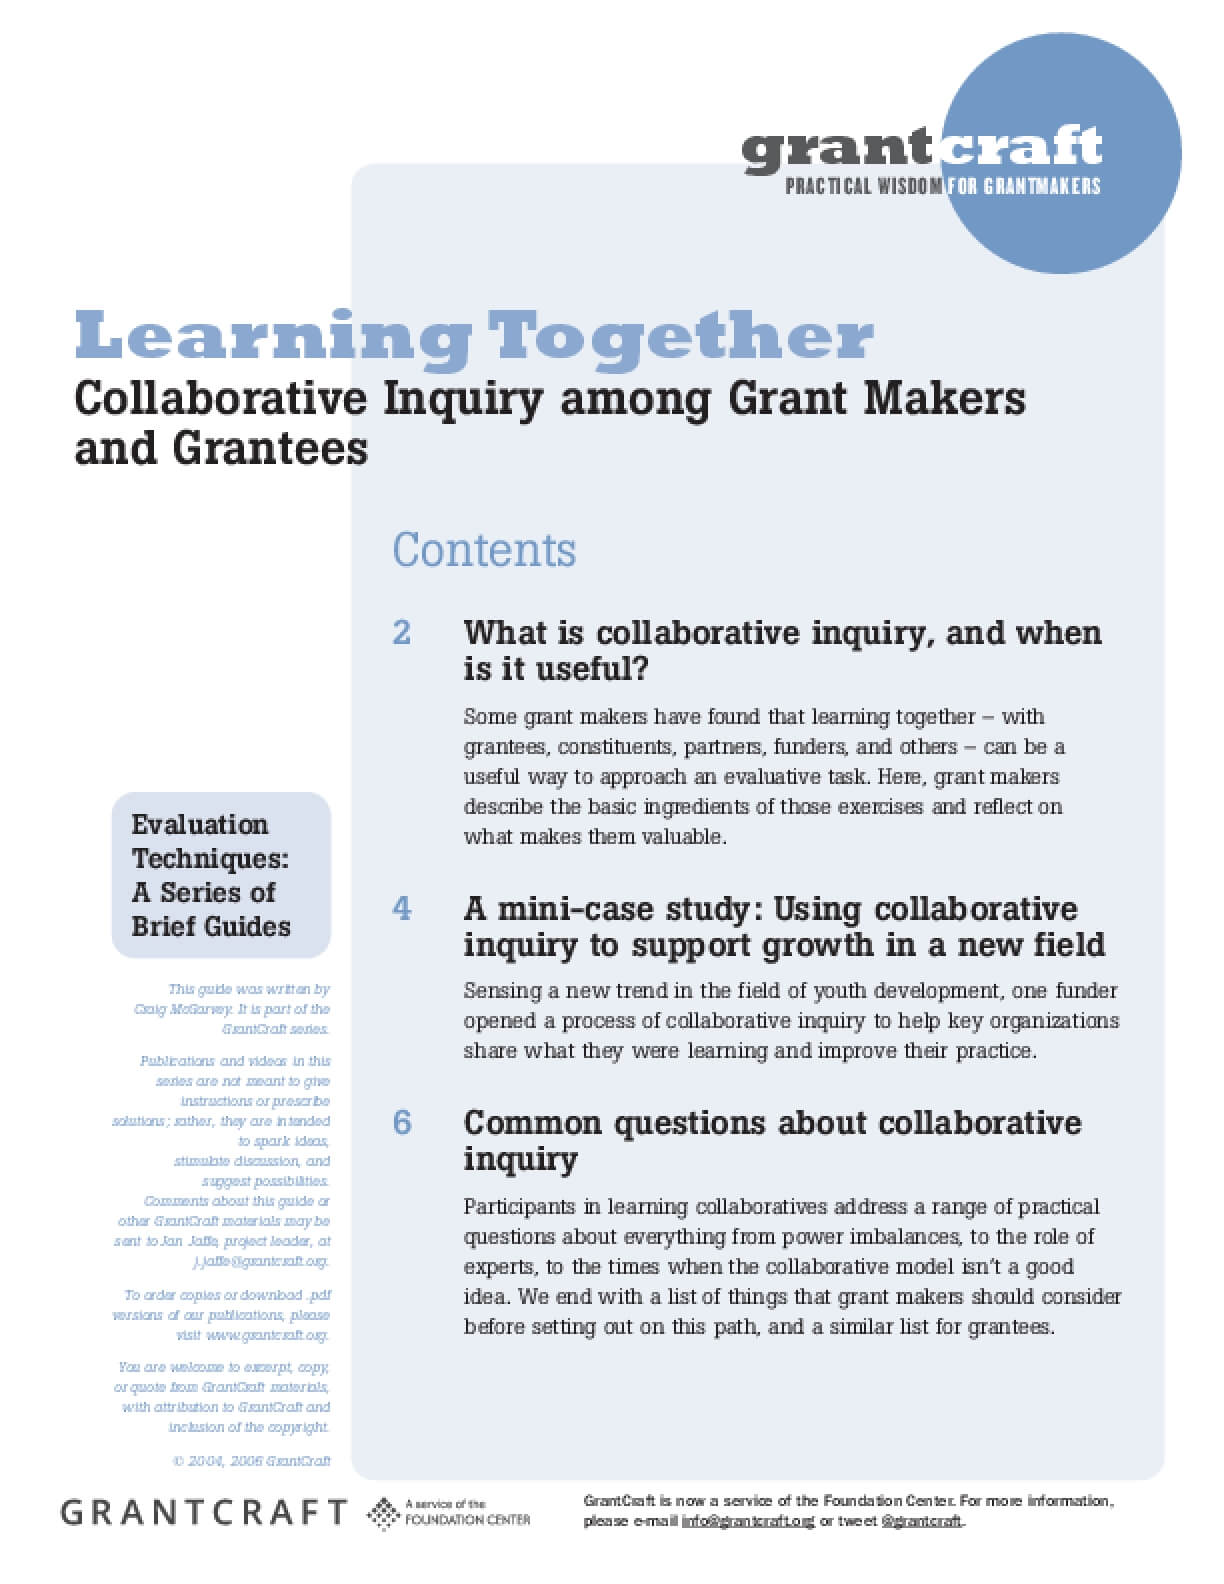 Learning Together: Collaborative Inquiry Beween Grant Makers and Grantees